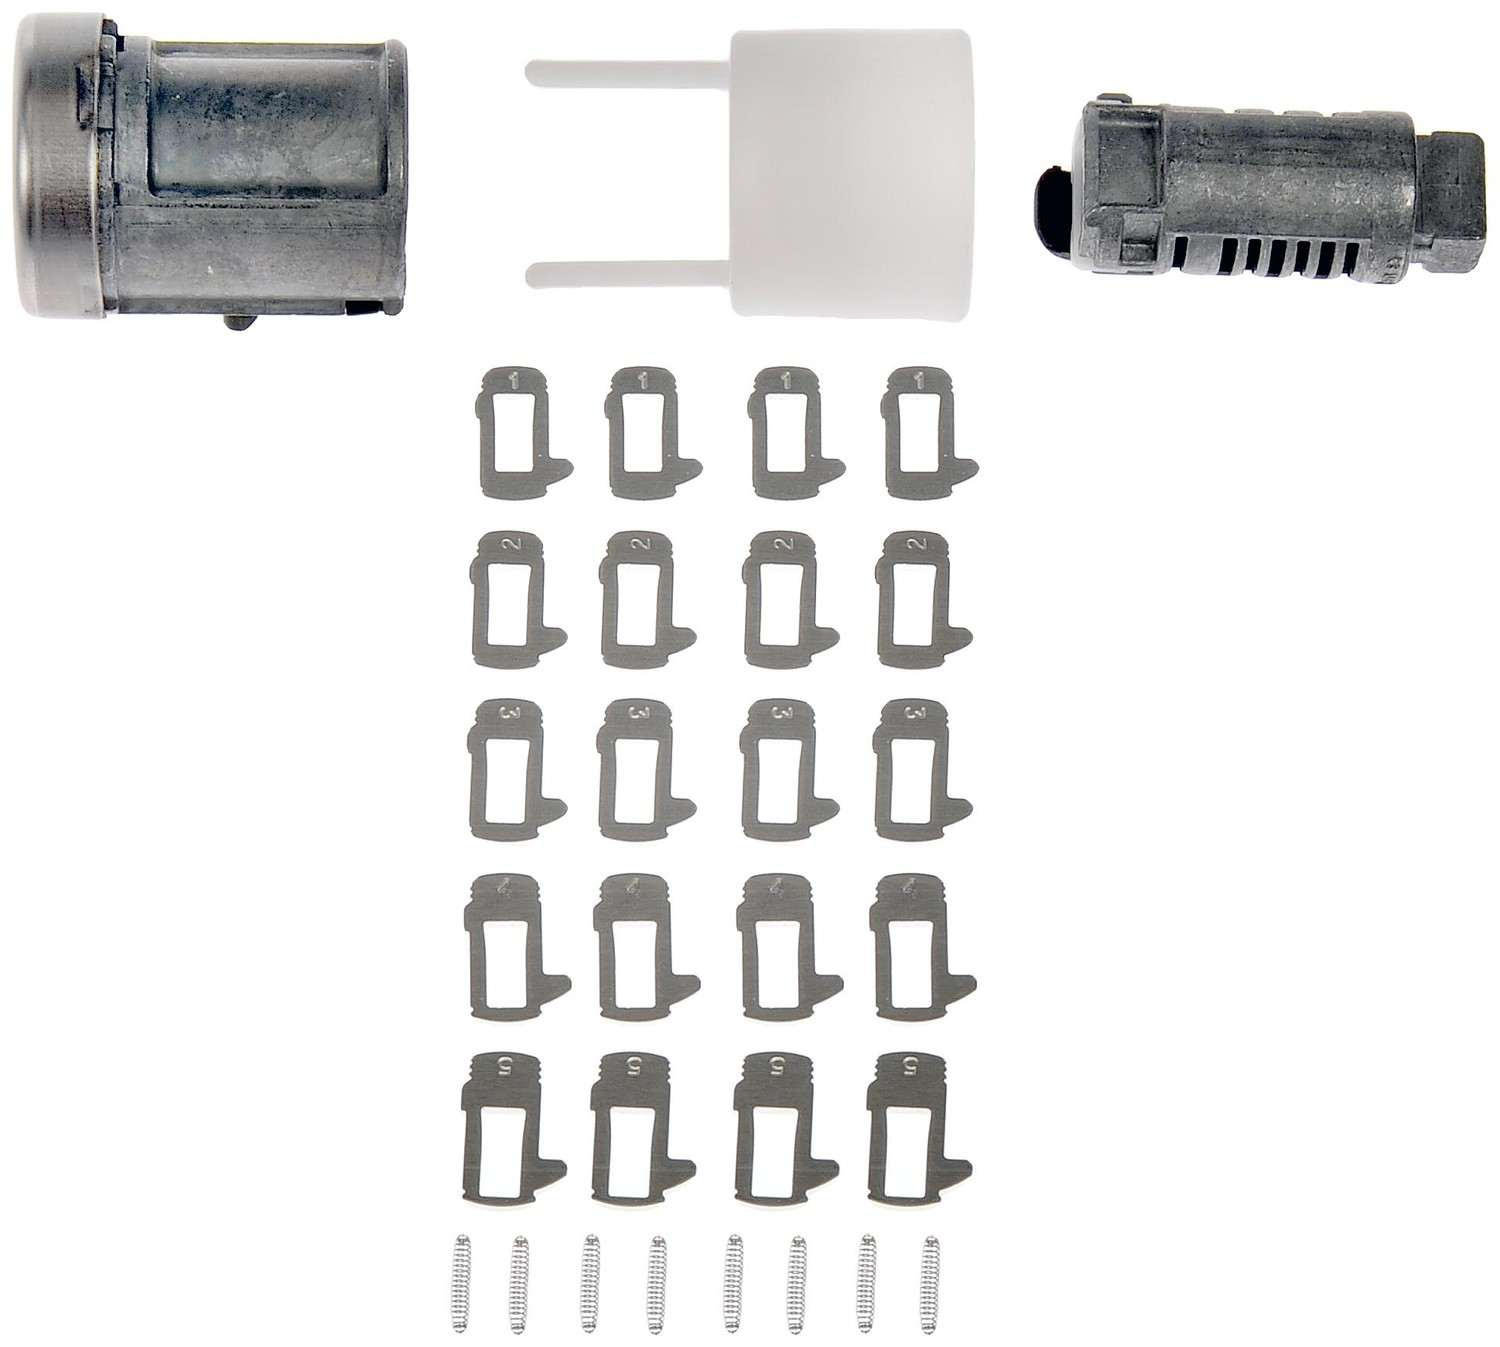 04 Mountaineer Fuse Box: Ignition Lock Cylinder Fits 2005-2010 Mercury Mountaineer